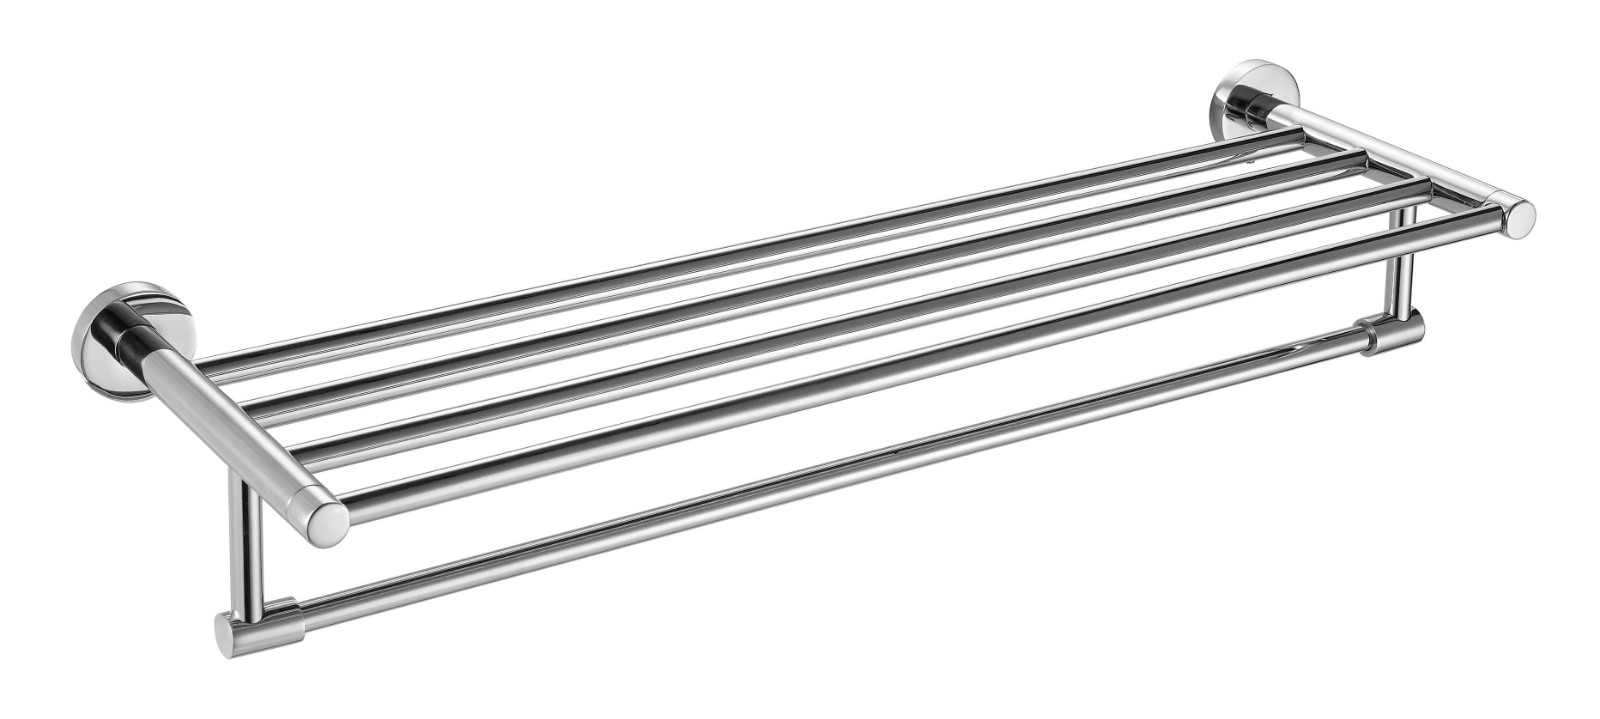 worldwide towel rings and bars supply for bathroom-1